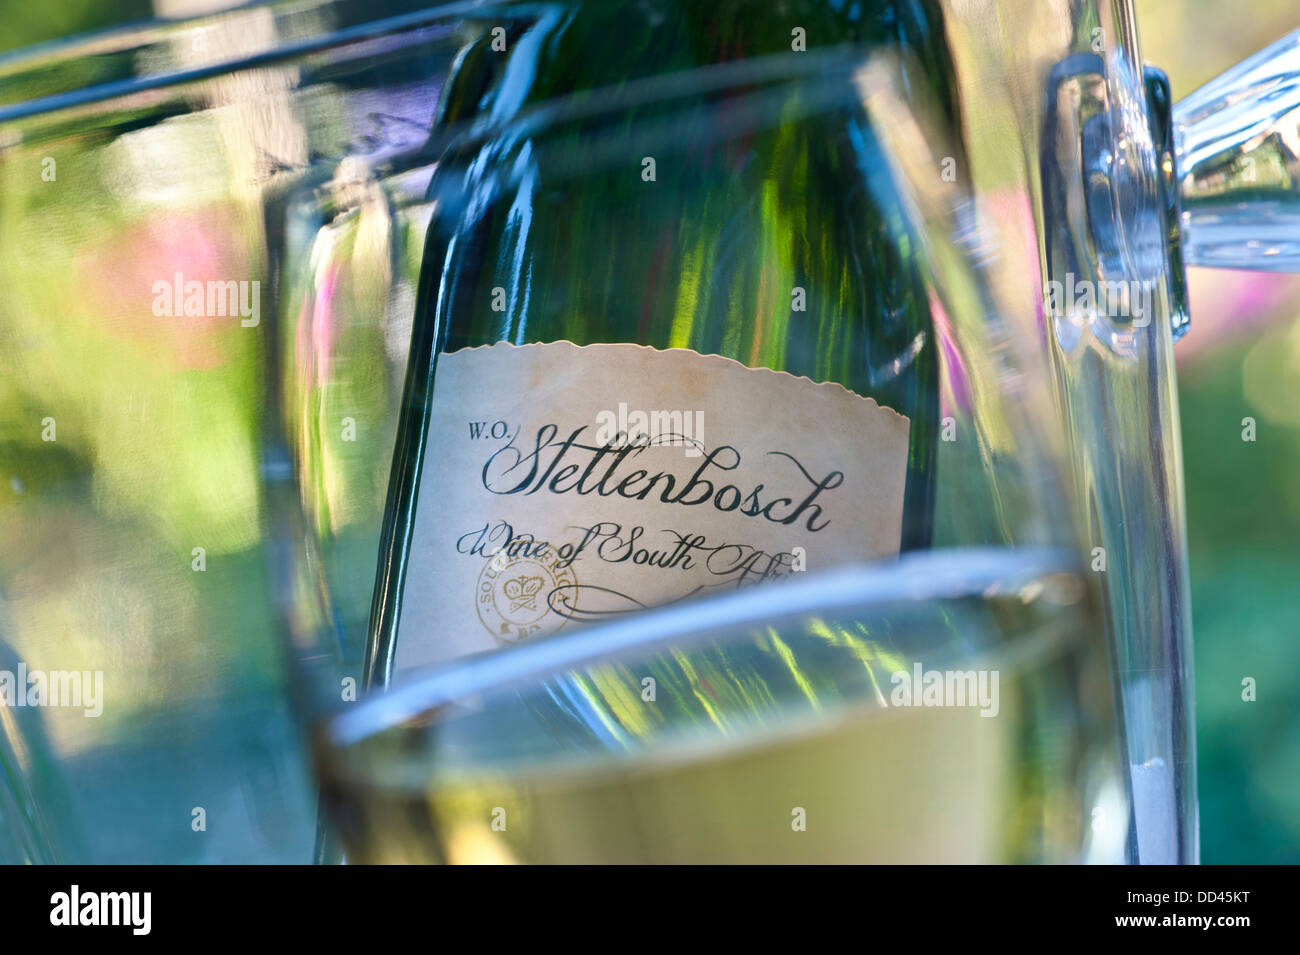 Closeup wine glass with Stellenbosch South Africa wine bottle and cooler behind in sunny alfresco garden situation - Stock Image